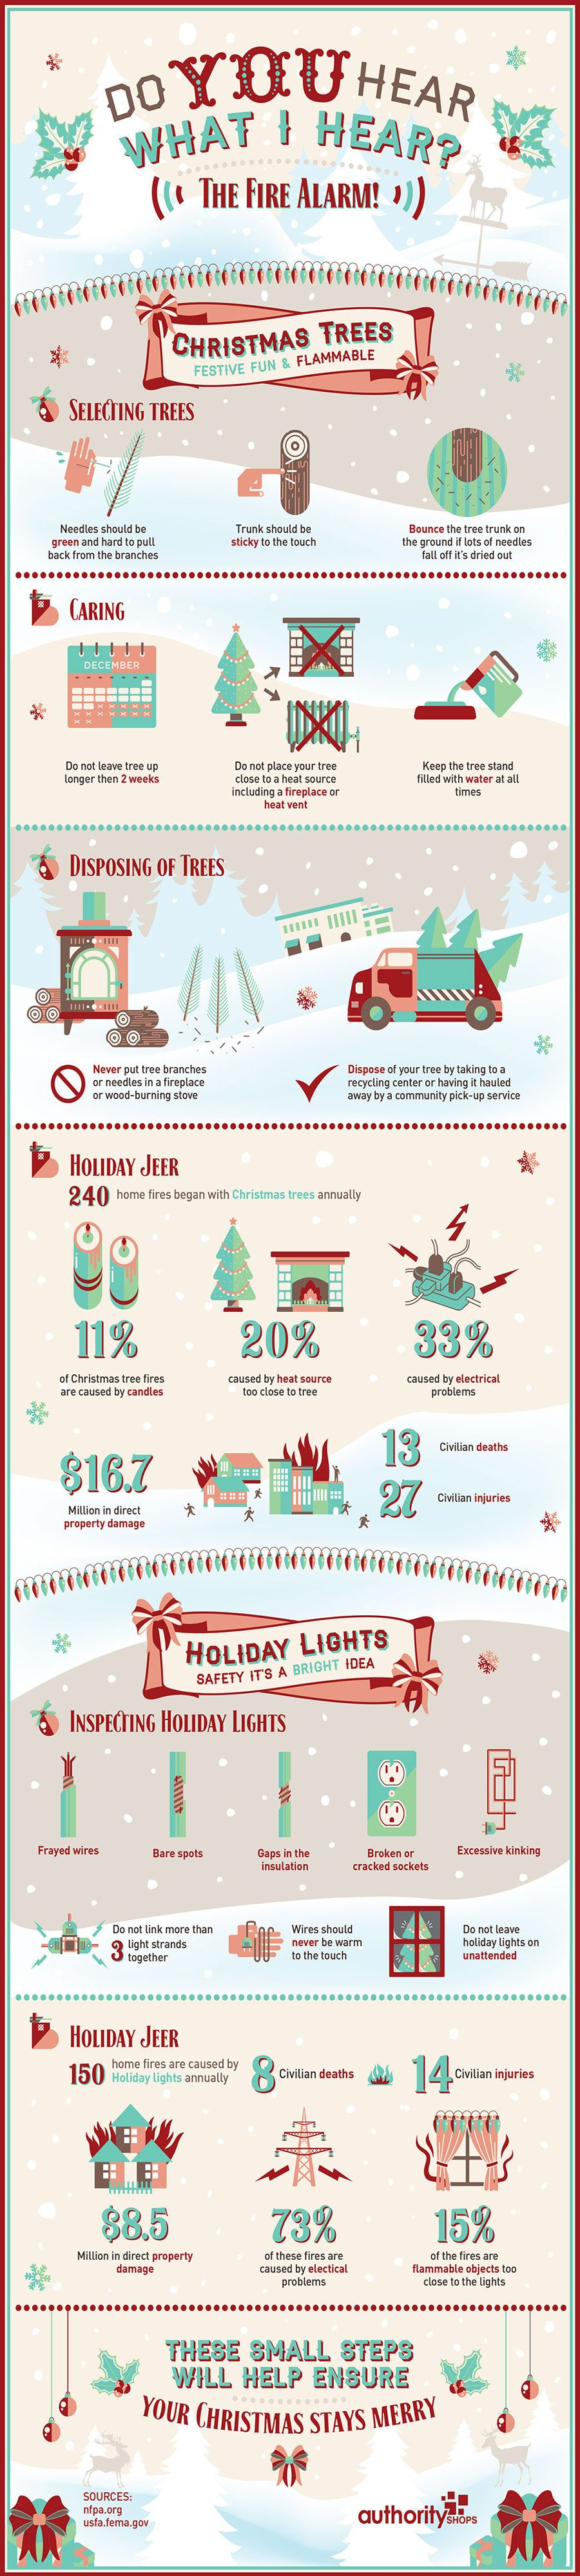 Christmas trees Festive, fun and flammable [Infographic